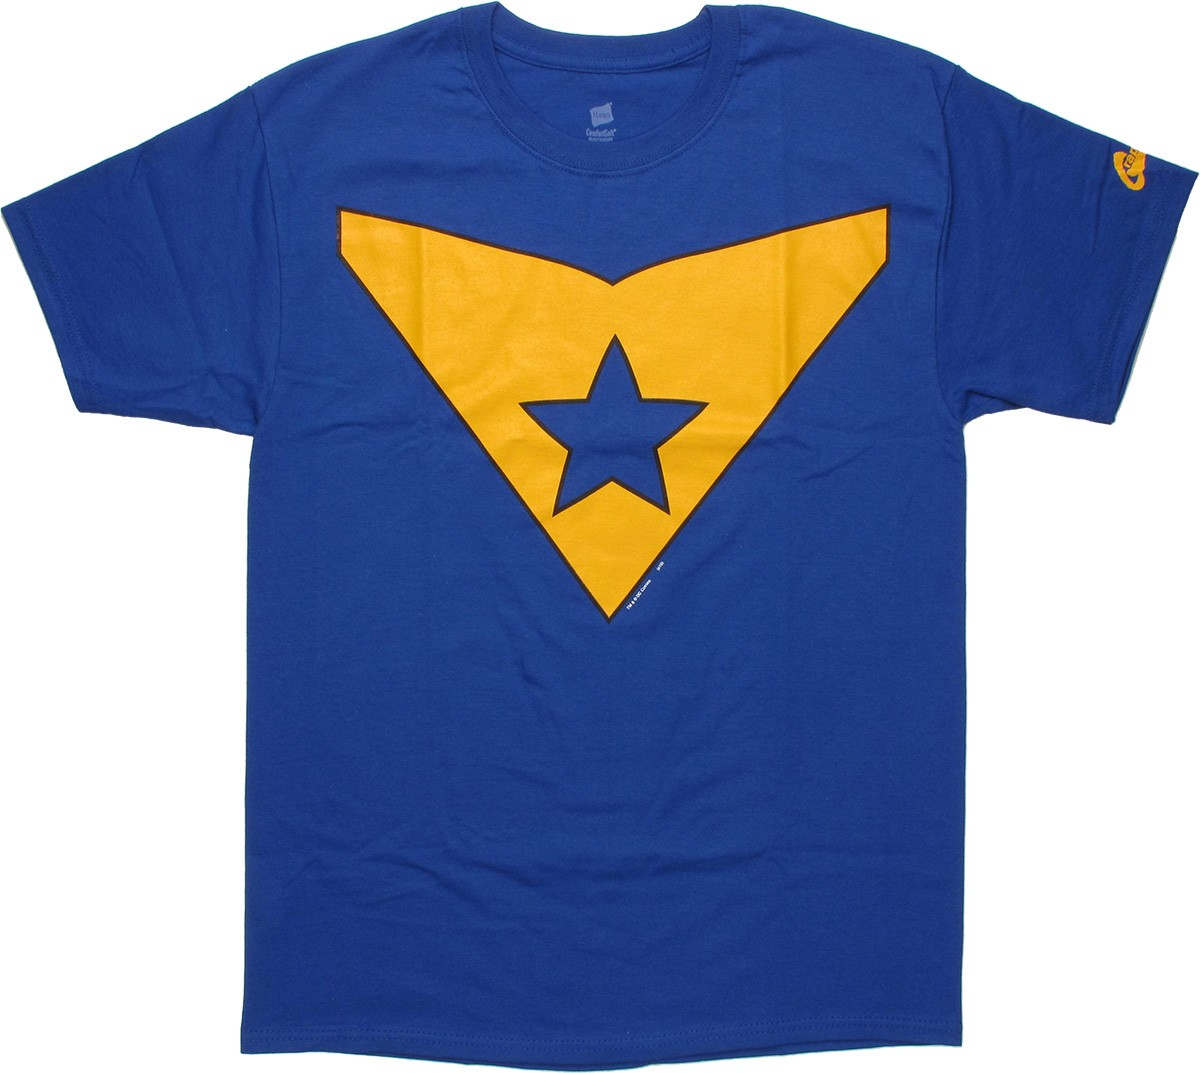 Booster gold symbol t shirt for Booster t shirt reviews